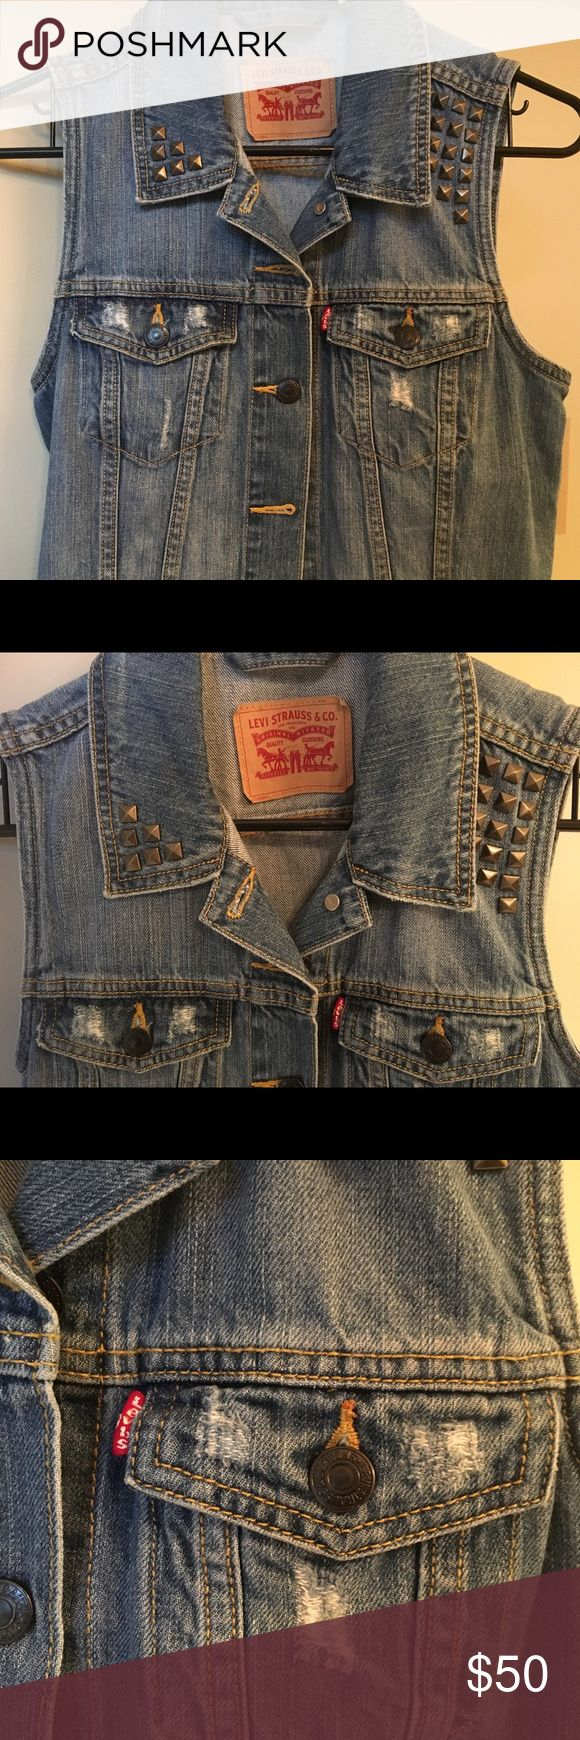 Levi's denim vest with studs This is brand new with tags, demon levi vest. Really cool distressed denim with brushed gold studs. Levi's Tops Tank Tops